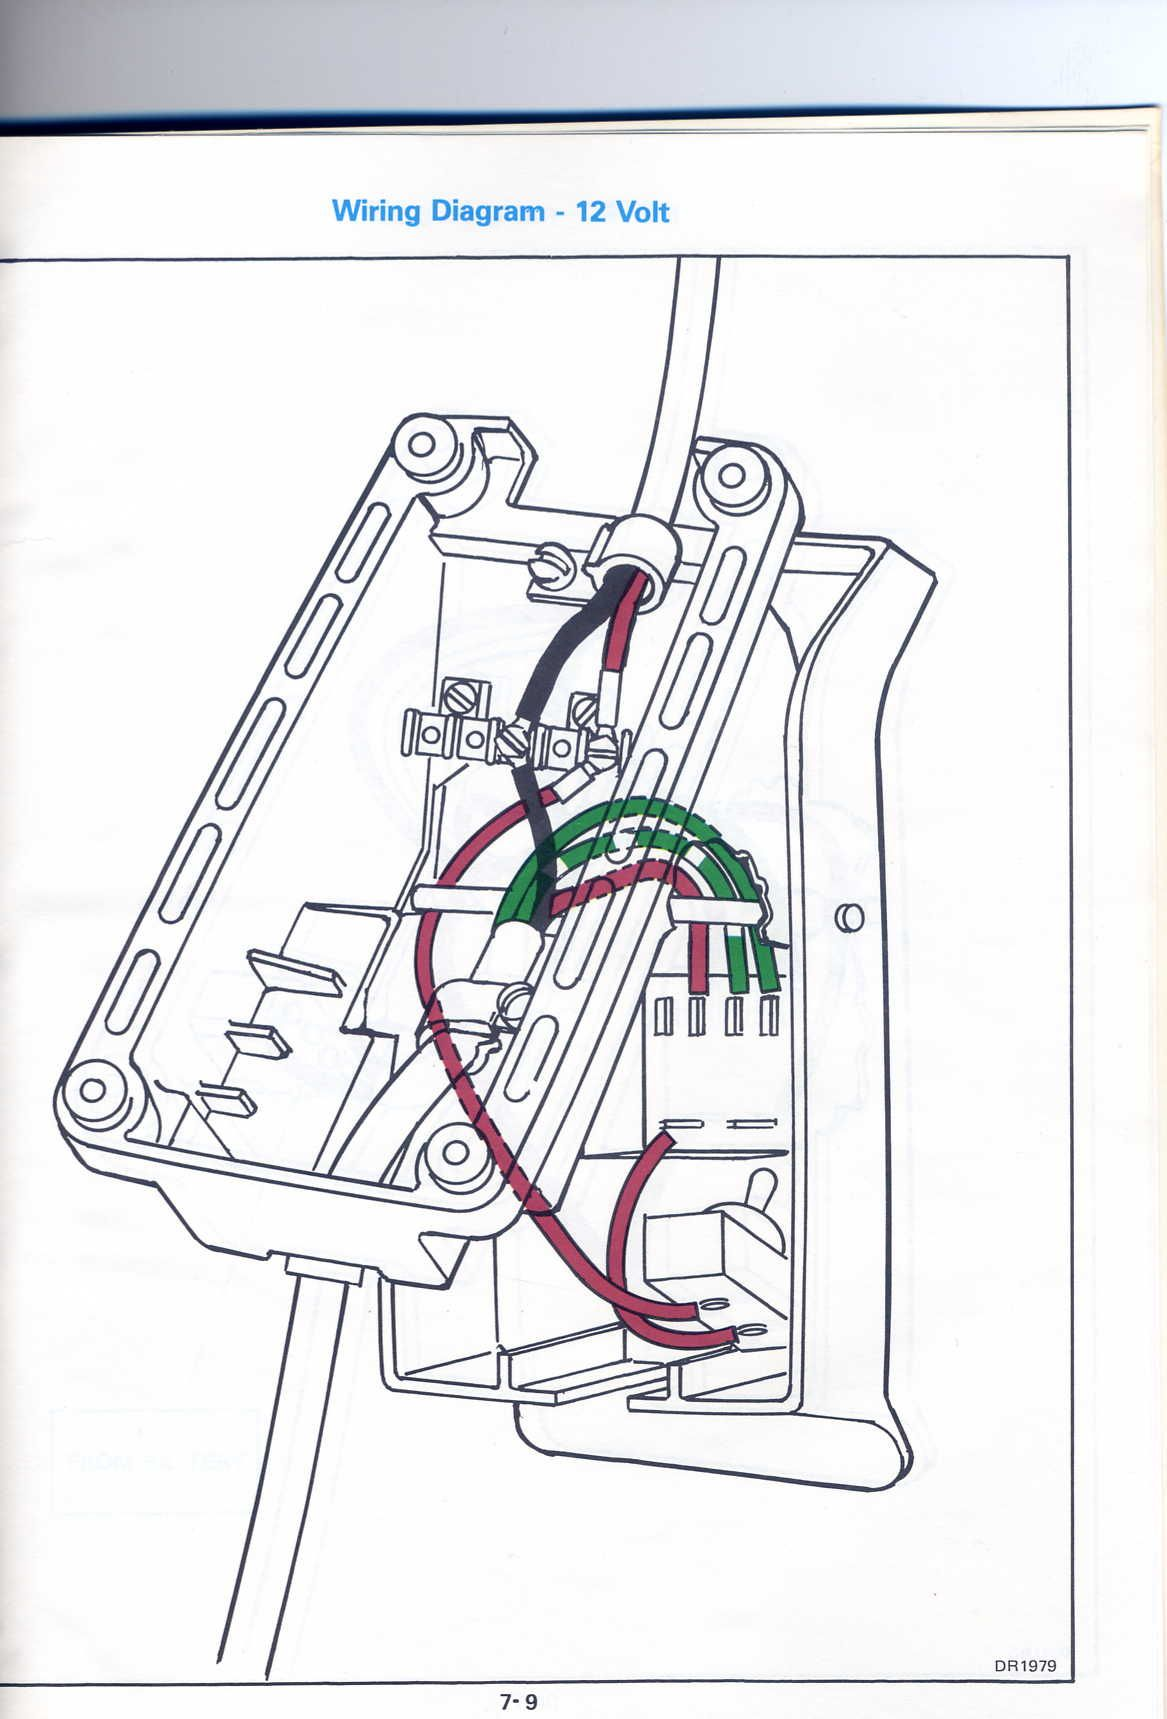 Motorguide Trolling Motor Wiring Diagram: Trying To Repair A Friends 1986  Johnson Trolling Motor Model. does anyone have a wiring diagram ...,Design